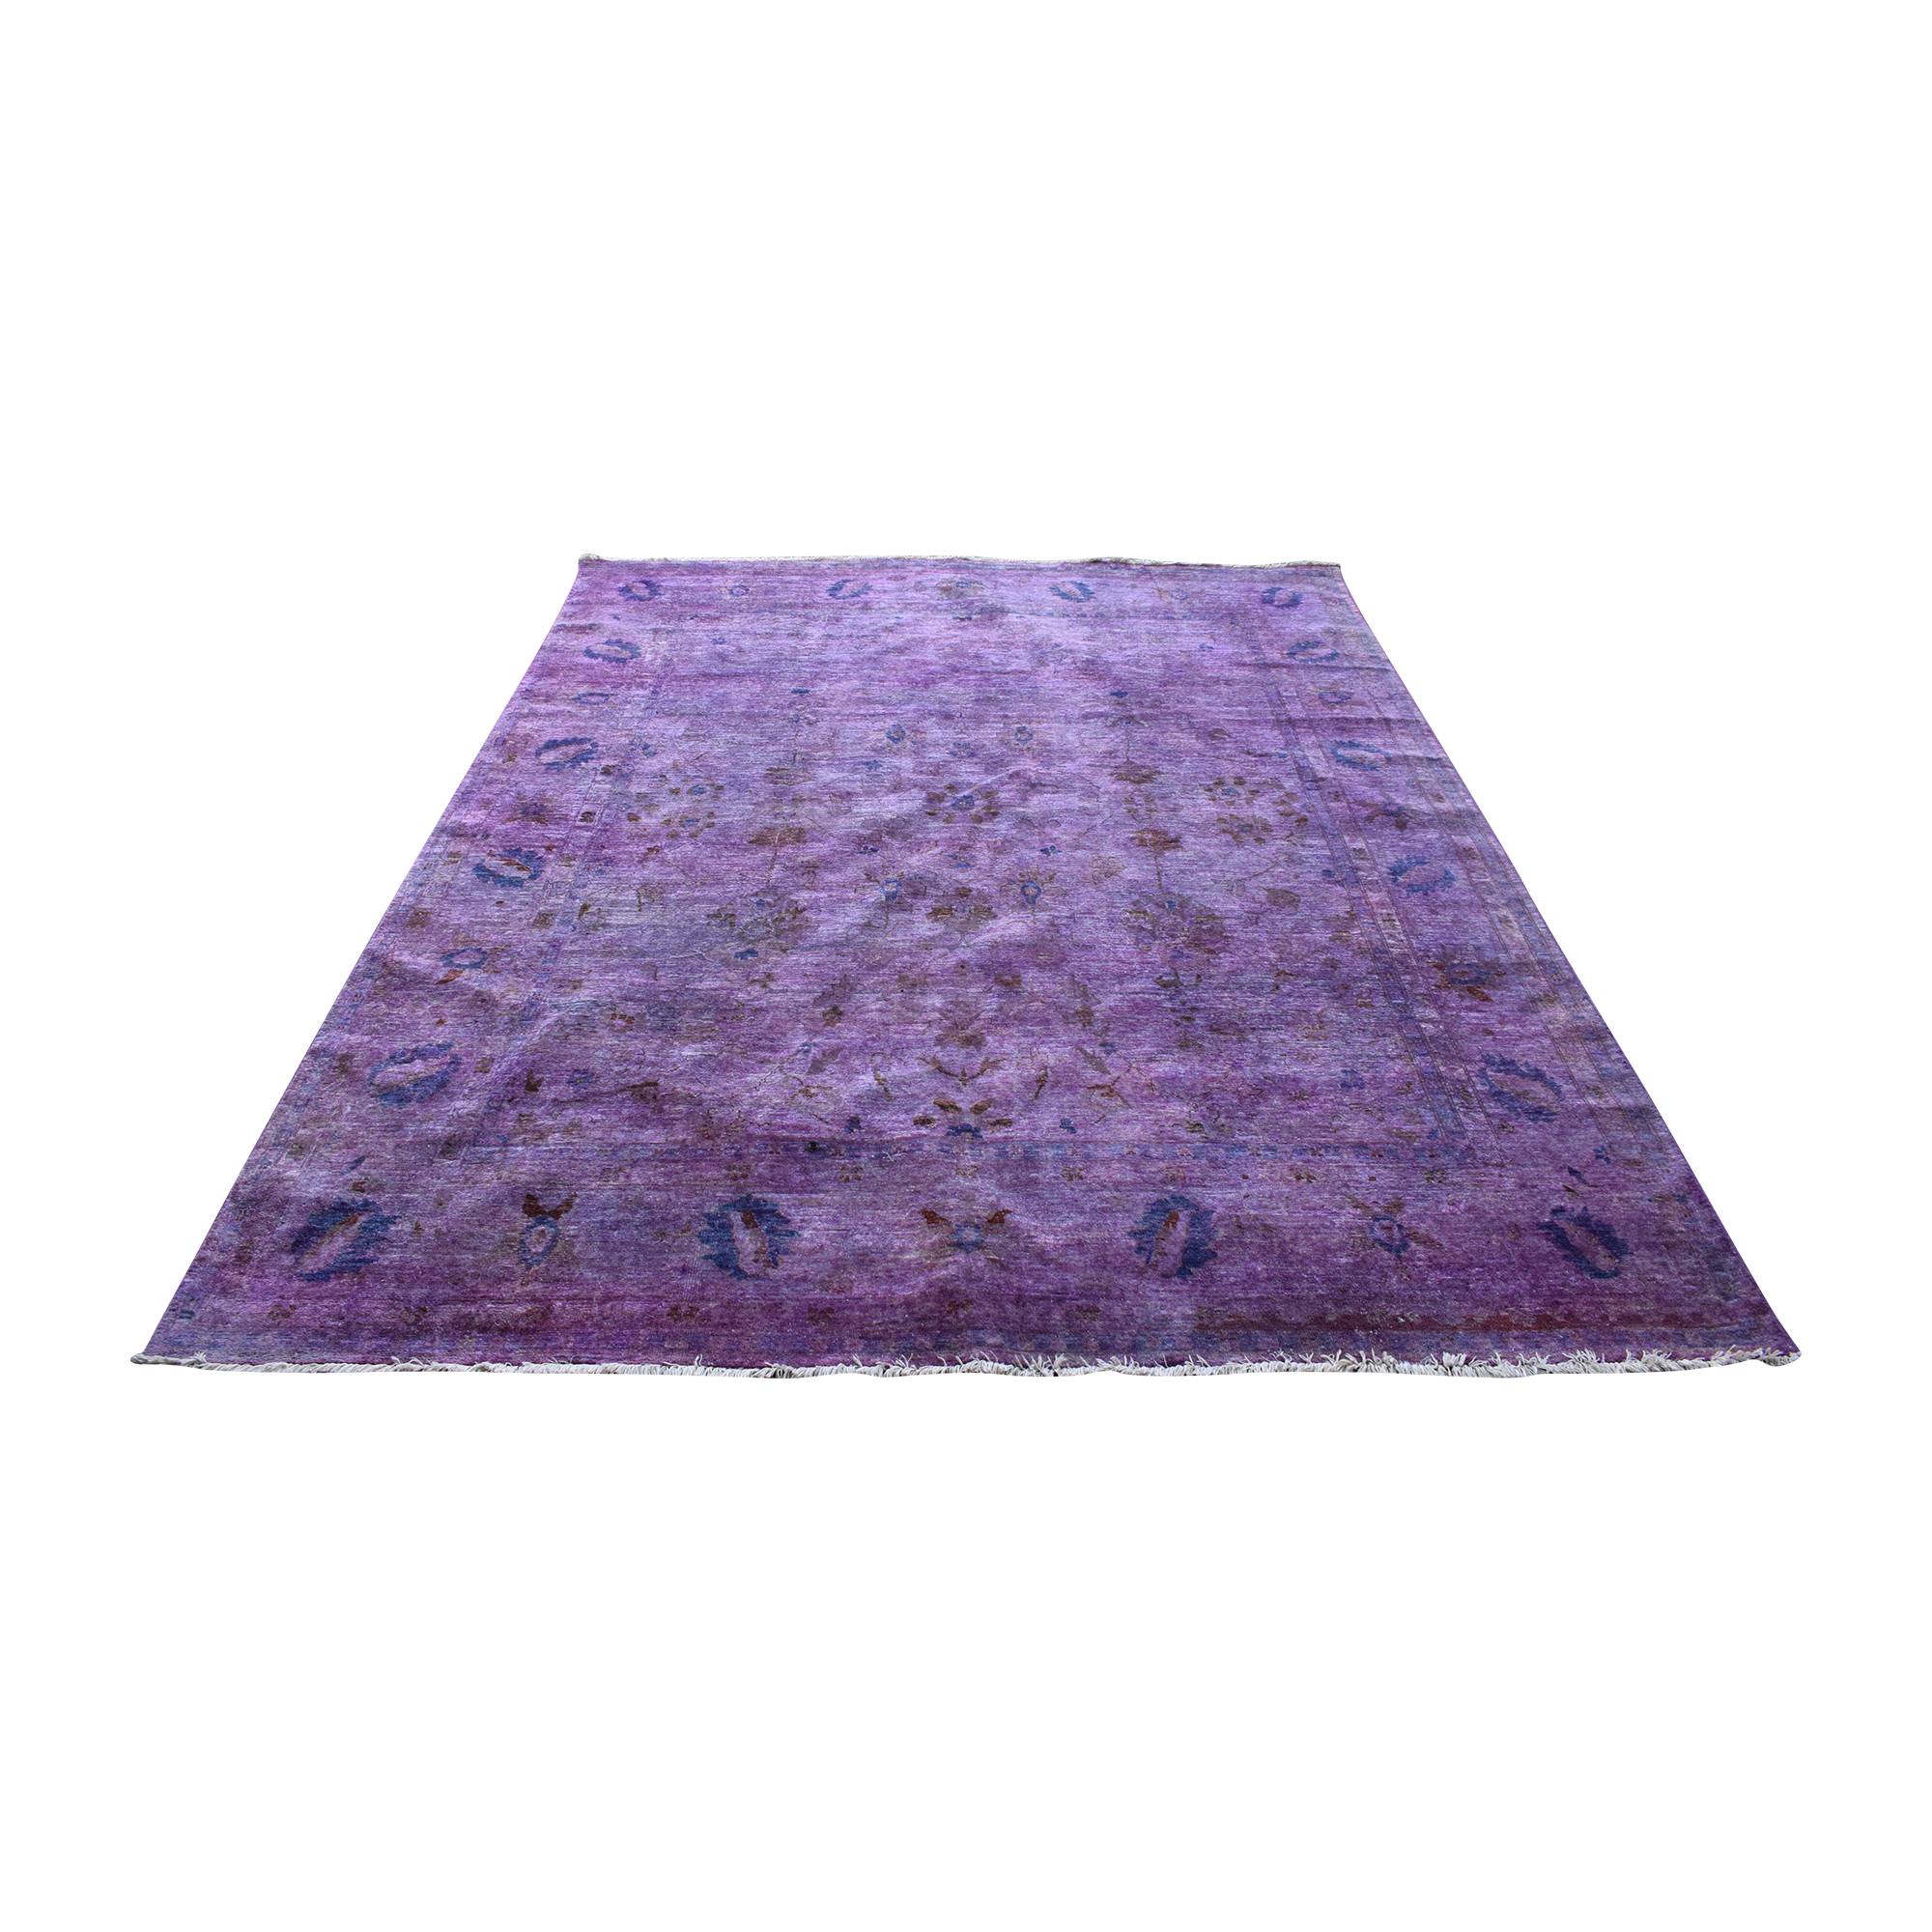 Rugs USA Rugs USA Overdyed Purple Rug coupon